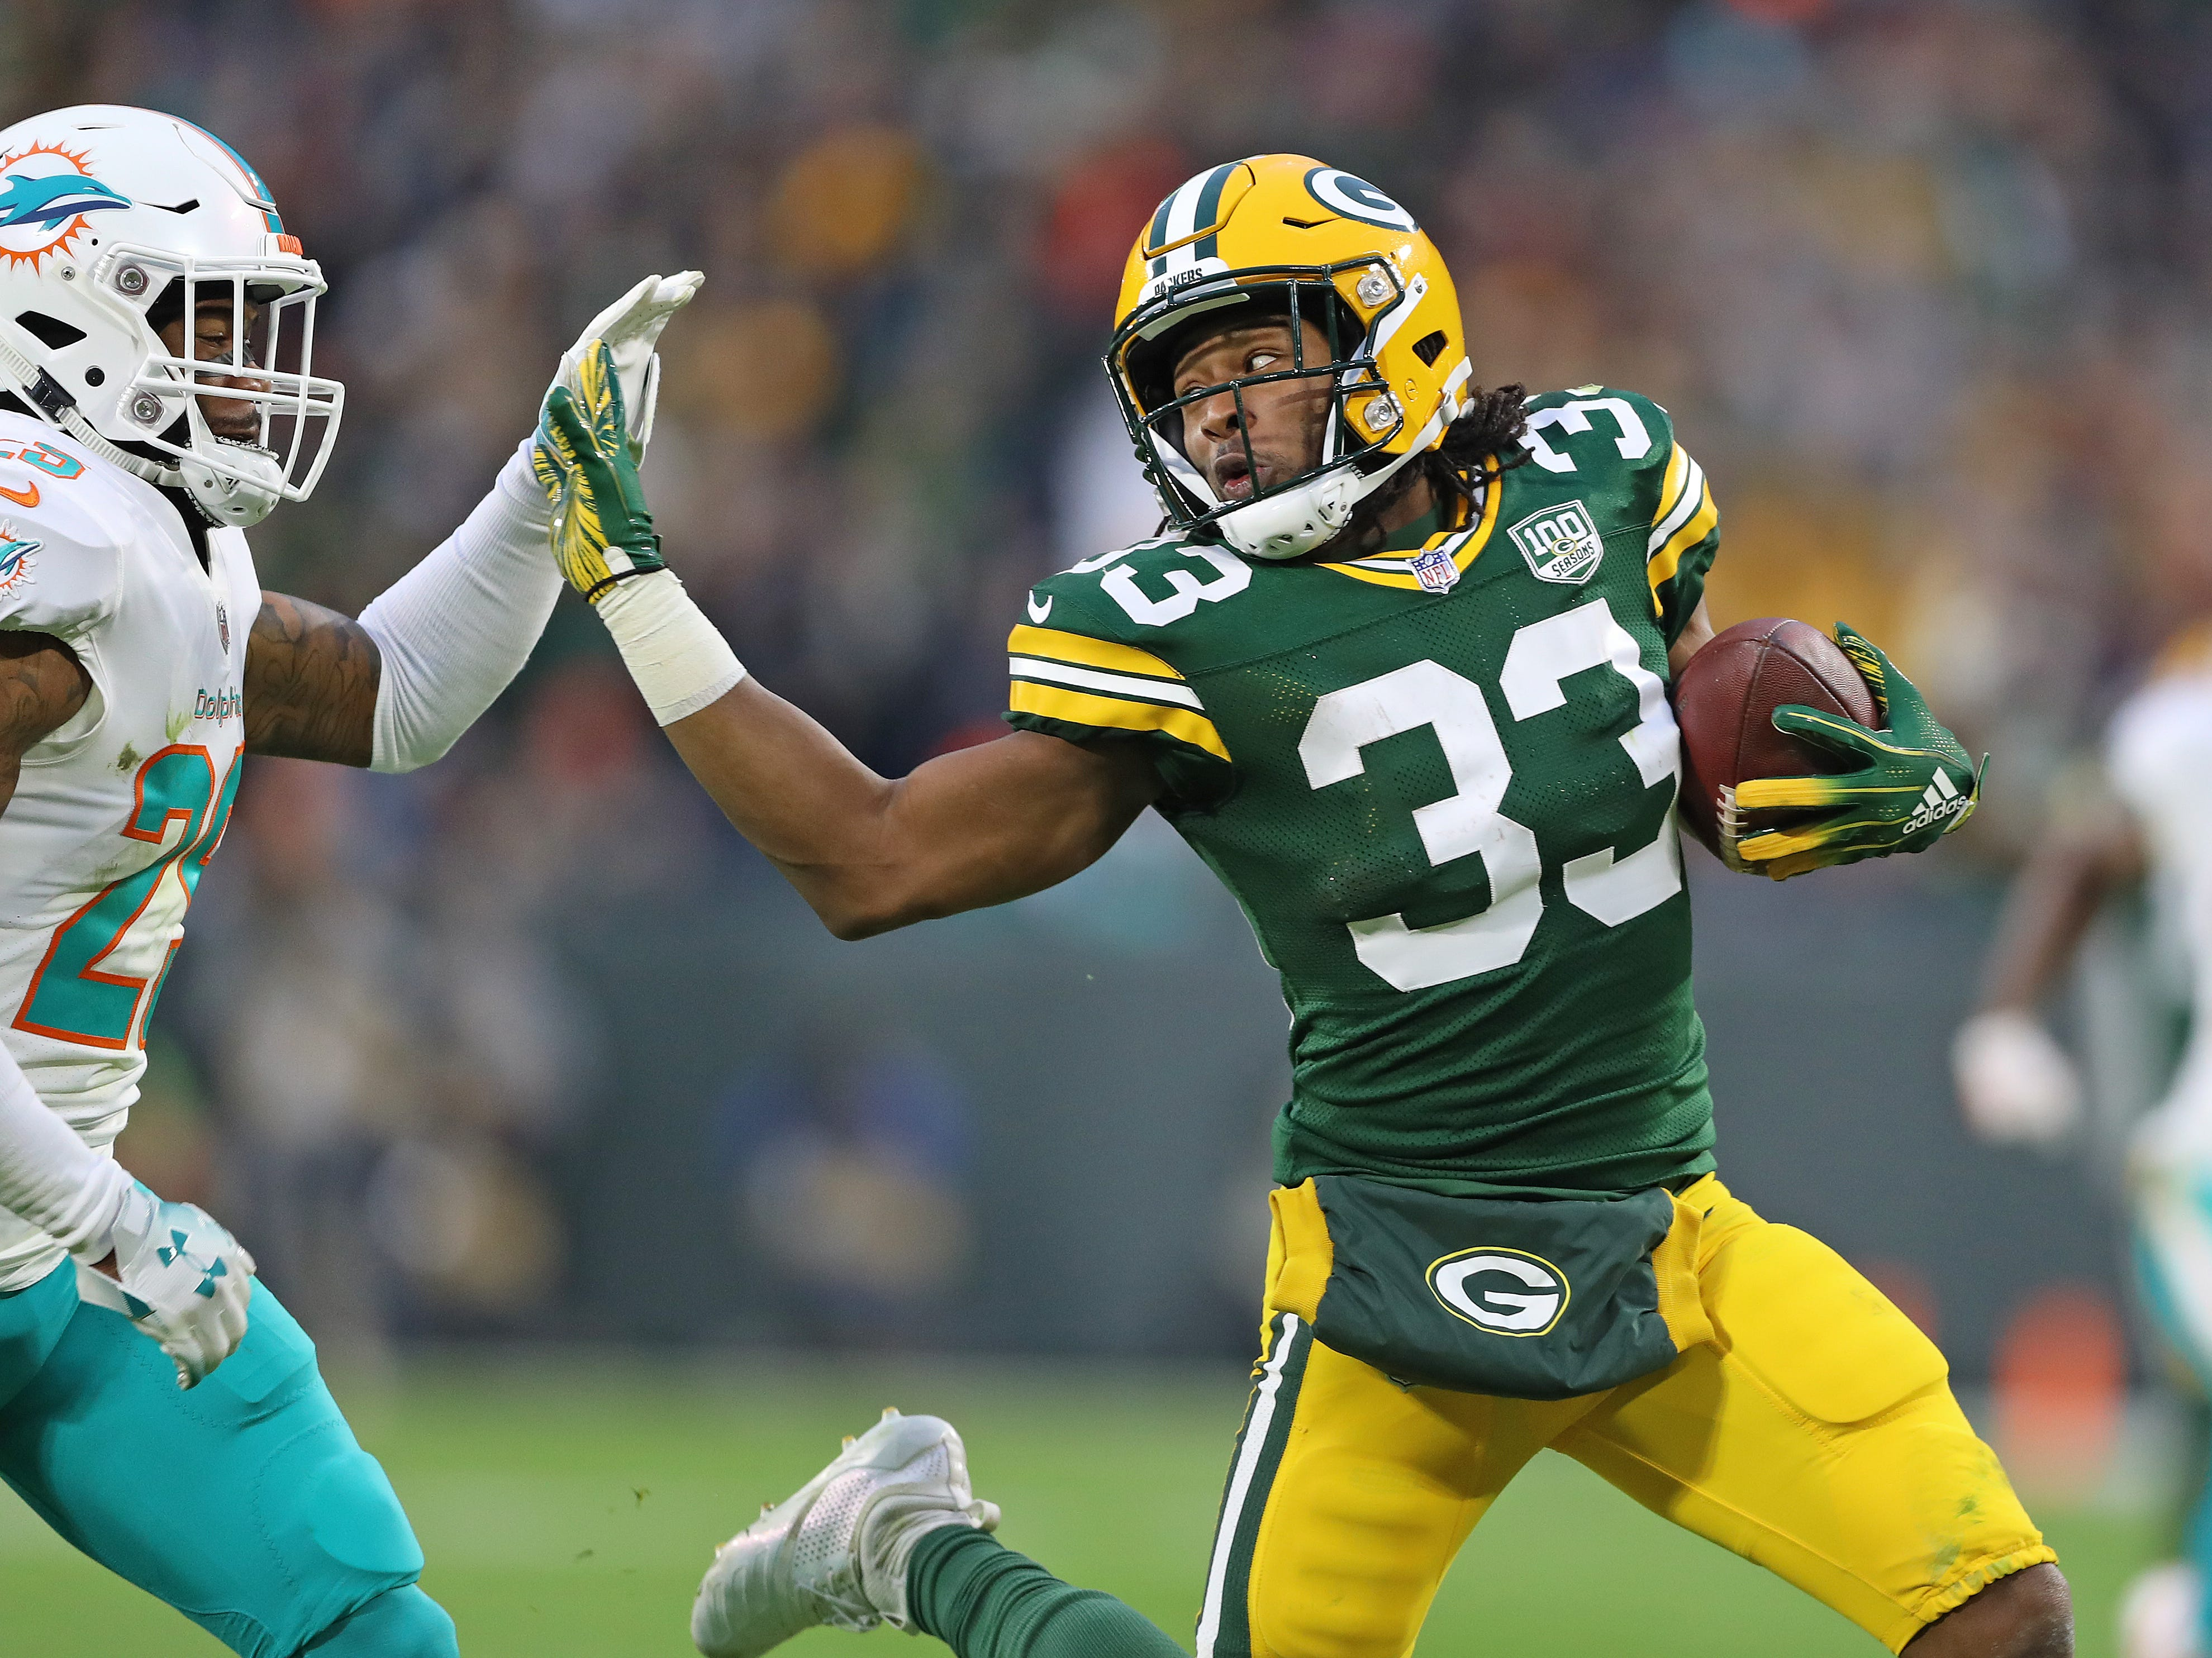 Green Bay Packers running back Aaron Jones (33) fends off a tackler against the Miami Dolphins at Lambeau Field Sunday, November 11, 2018 in Green Bay, Wis. Jim Matthews/USA TODAY NETWORK-Wis